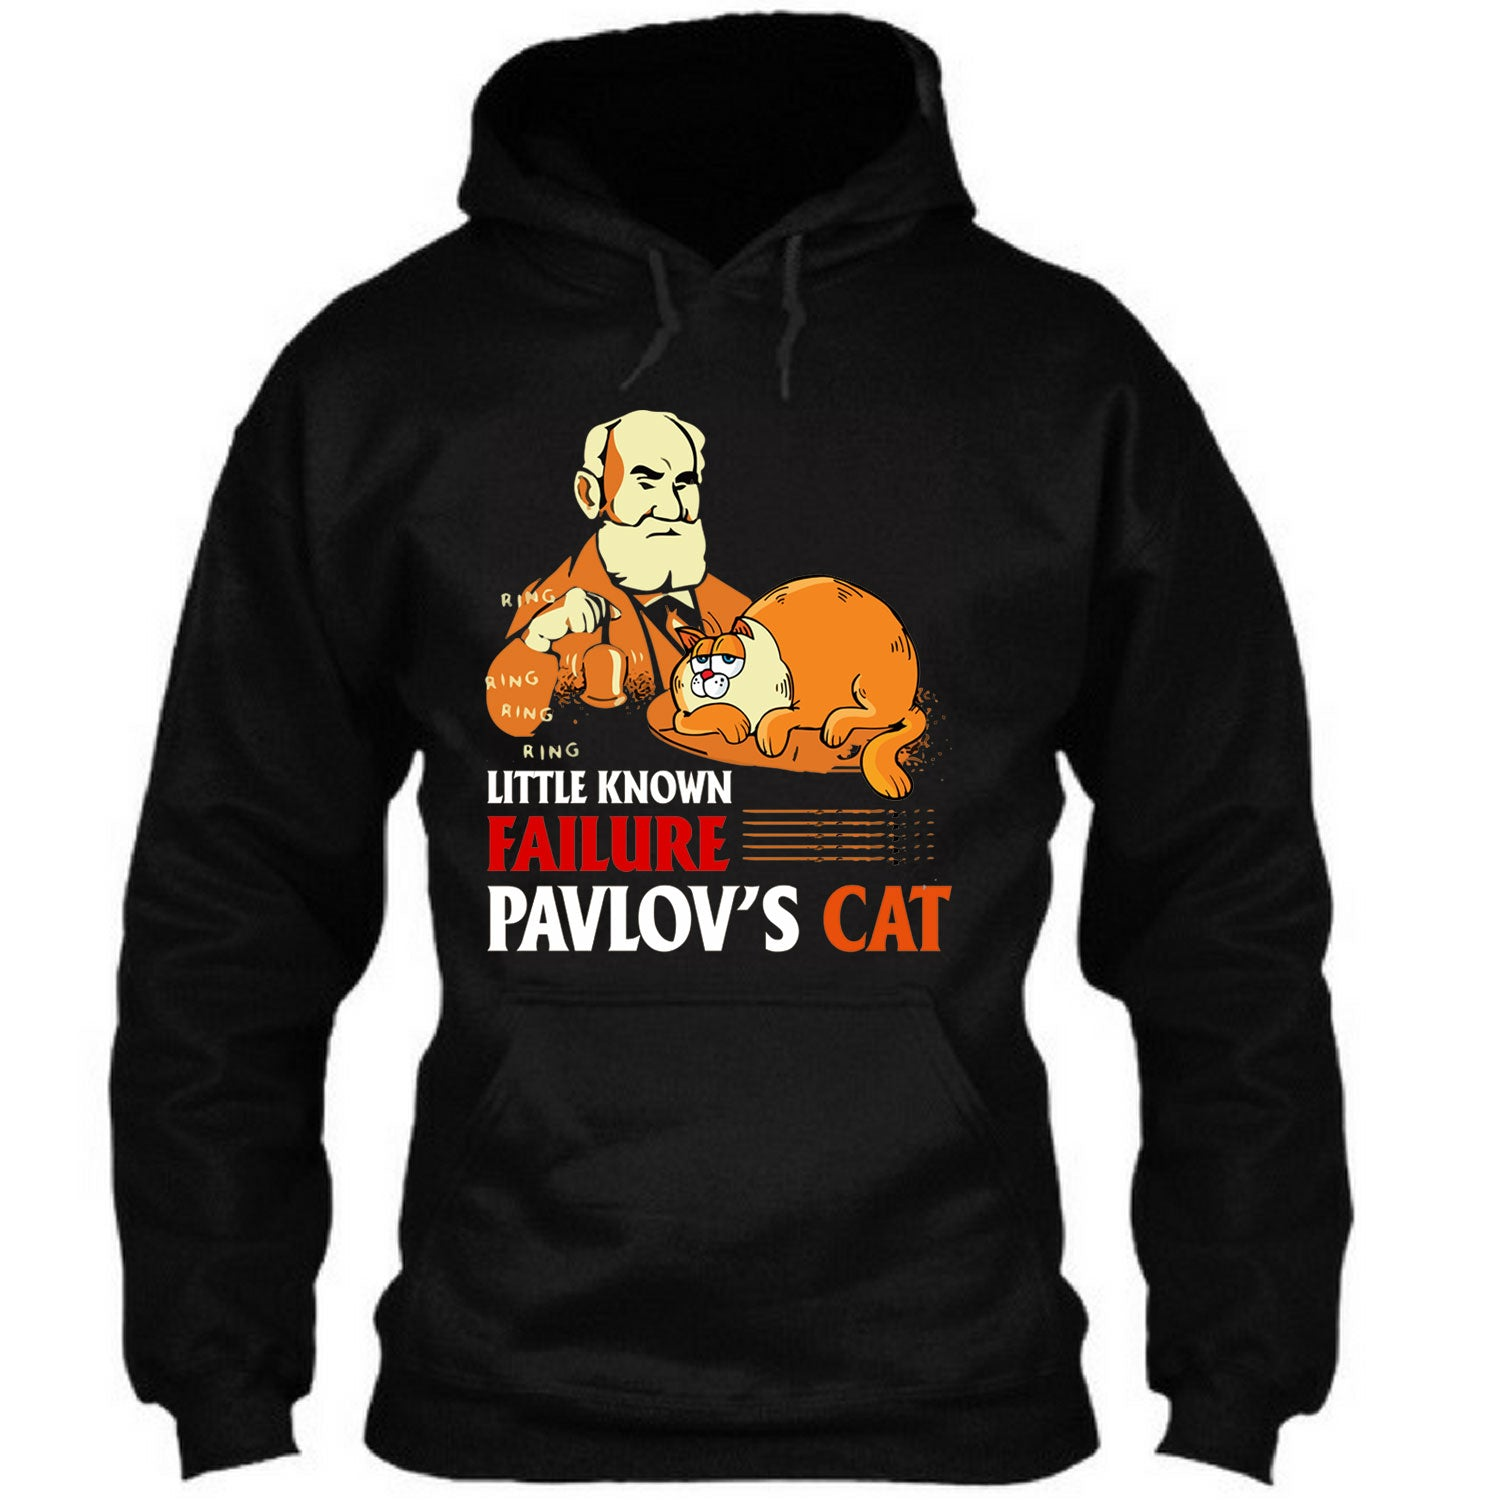 Pavlov's Cat little known failure